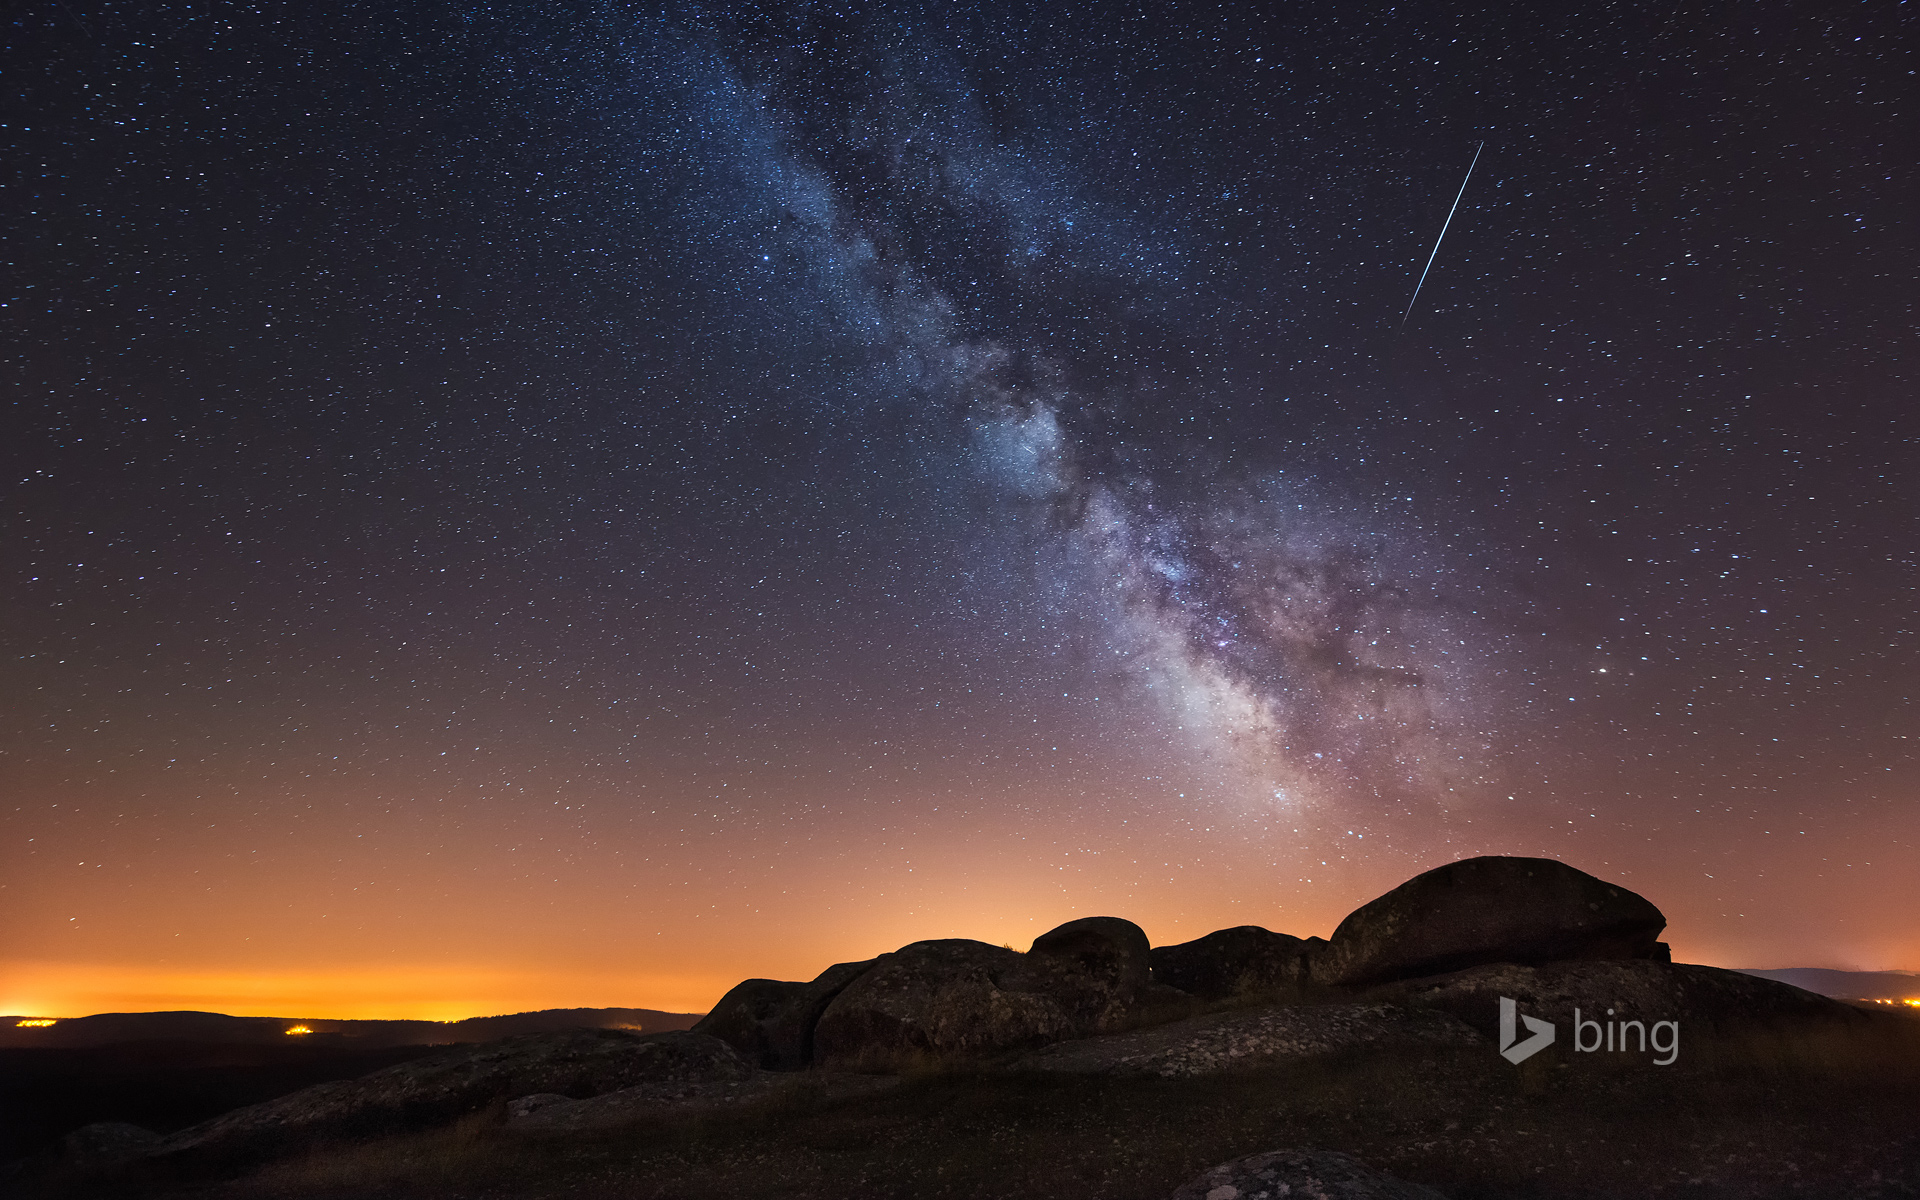 A view of the Milky Way from La Coruña, Spain